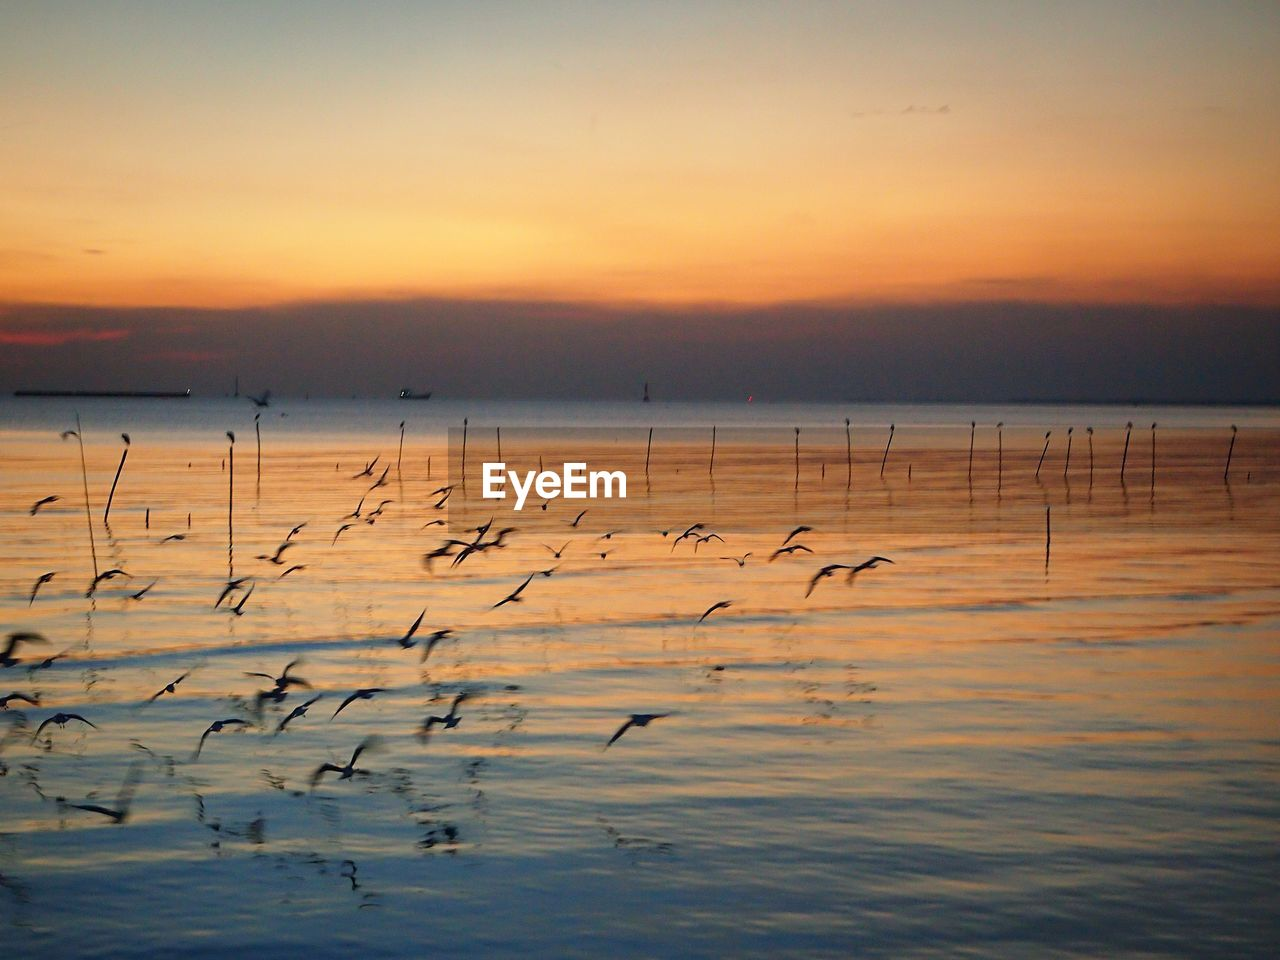 sunset, sky, water, beauty in nature, scenics - nature, nature, large group of animals, tranquility, tranquil scene, orange color, bird, animal themes, group of animals, animal, waterfront, vertebrate, no people, cloud - sky, sea, outdoors, flock of birds